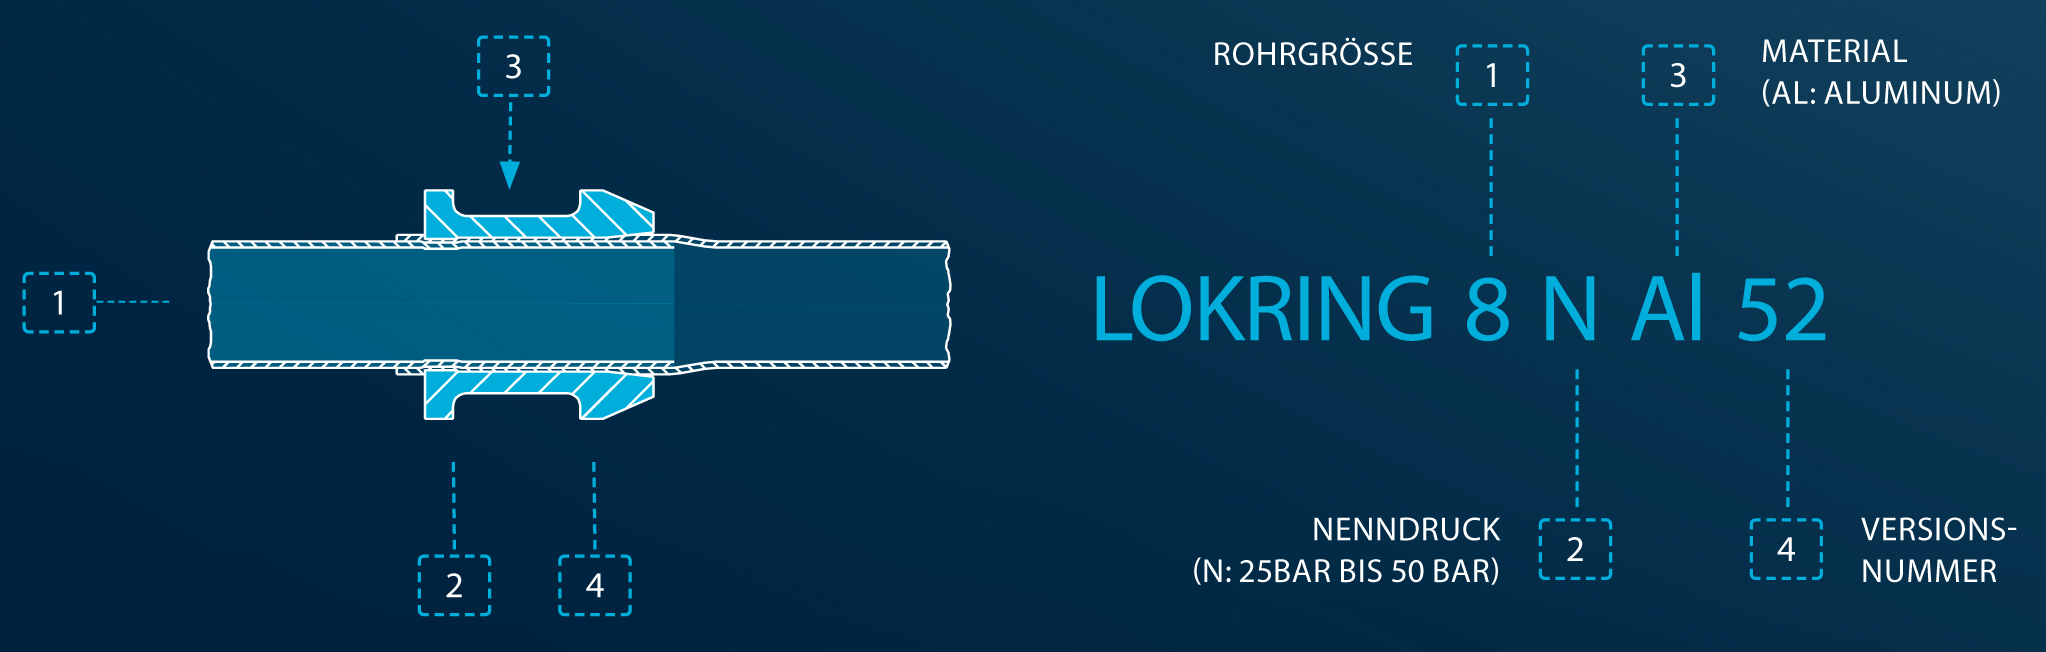 Lokring Single Ring Berechnung